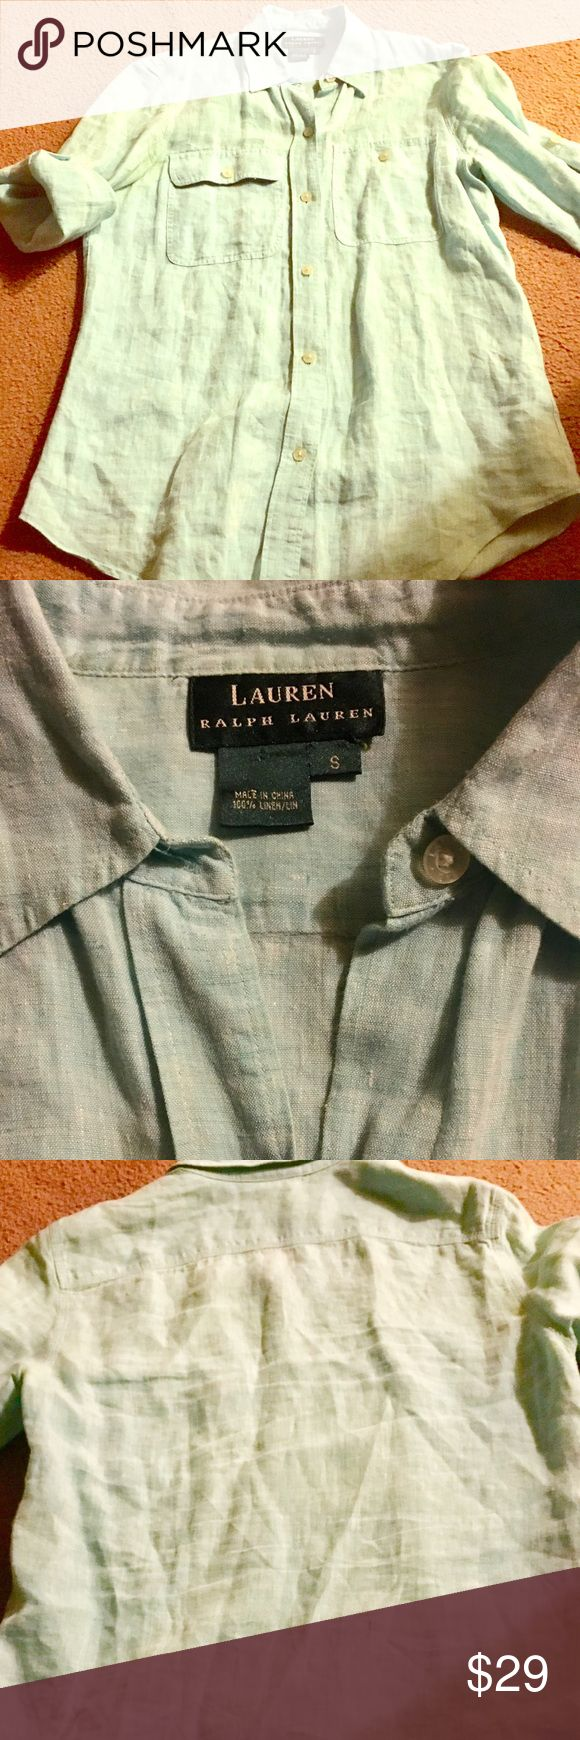 GUC POLO BUTTON DOWN LINNEN TOP SIZE SMALL POLO LINEN PISTACHIO COLOR BUTTON DOWN TOP. Size small. 3/4 sleeves with folding sleeves with a strap as seen in pics. This SEPARATE TOP HAS A MATCHING SEPARATE MATCHING  BOTTOM. Also listed in my closet for sale super comfortable and cool. Use fir the beach or anywhere, it could have many looks take s look 👀. Bundle for savings. Listing this top at lowest priced to sell. Normal listings would be $46. Have one in peace also identical Polo by Ralph…